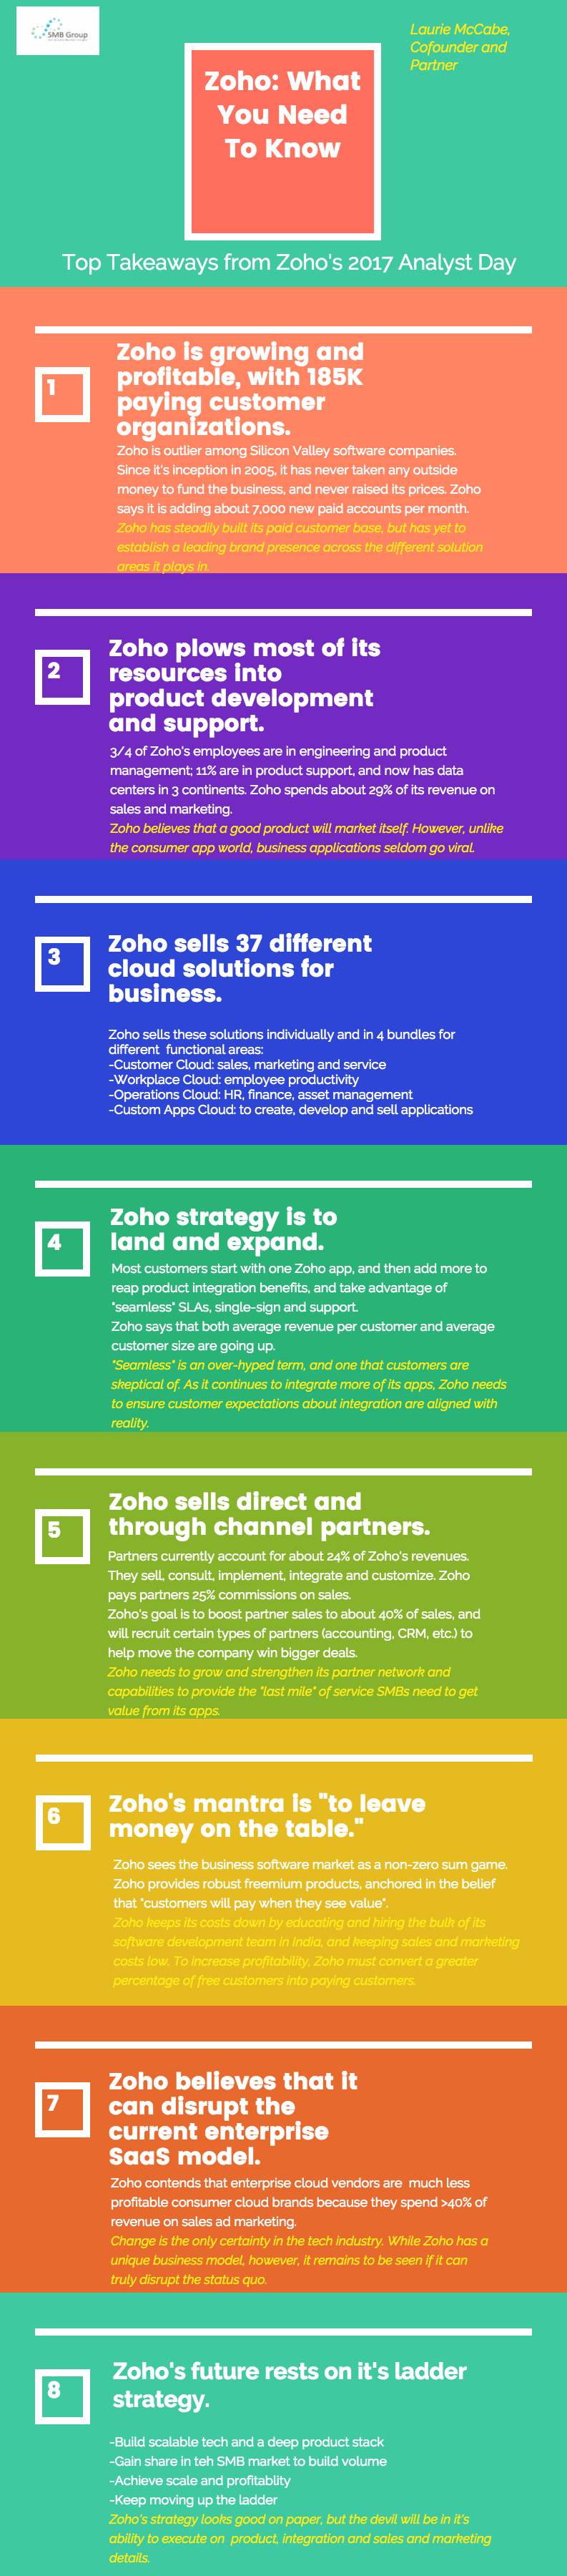 saas laurie mccabe s blog zoho what you need to know